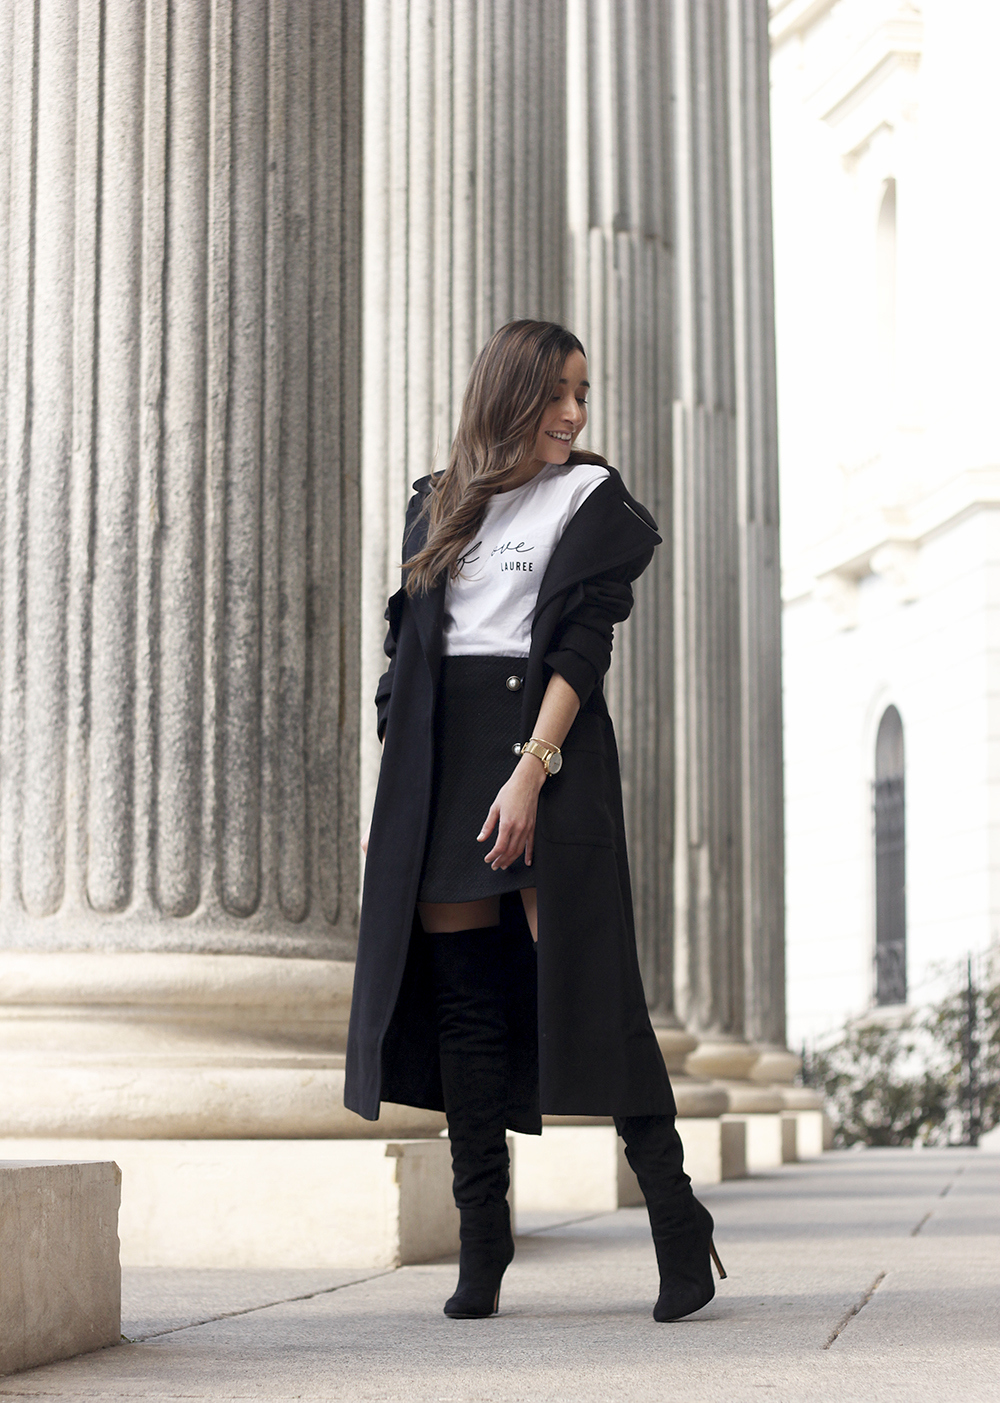 tweed skirt over the knee boots black trench coat street style outfit 201916